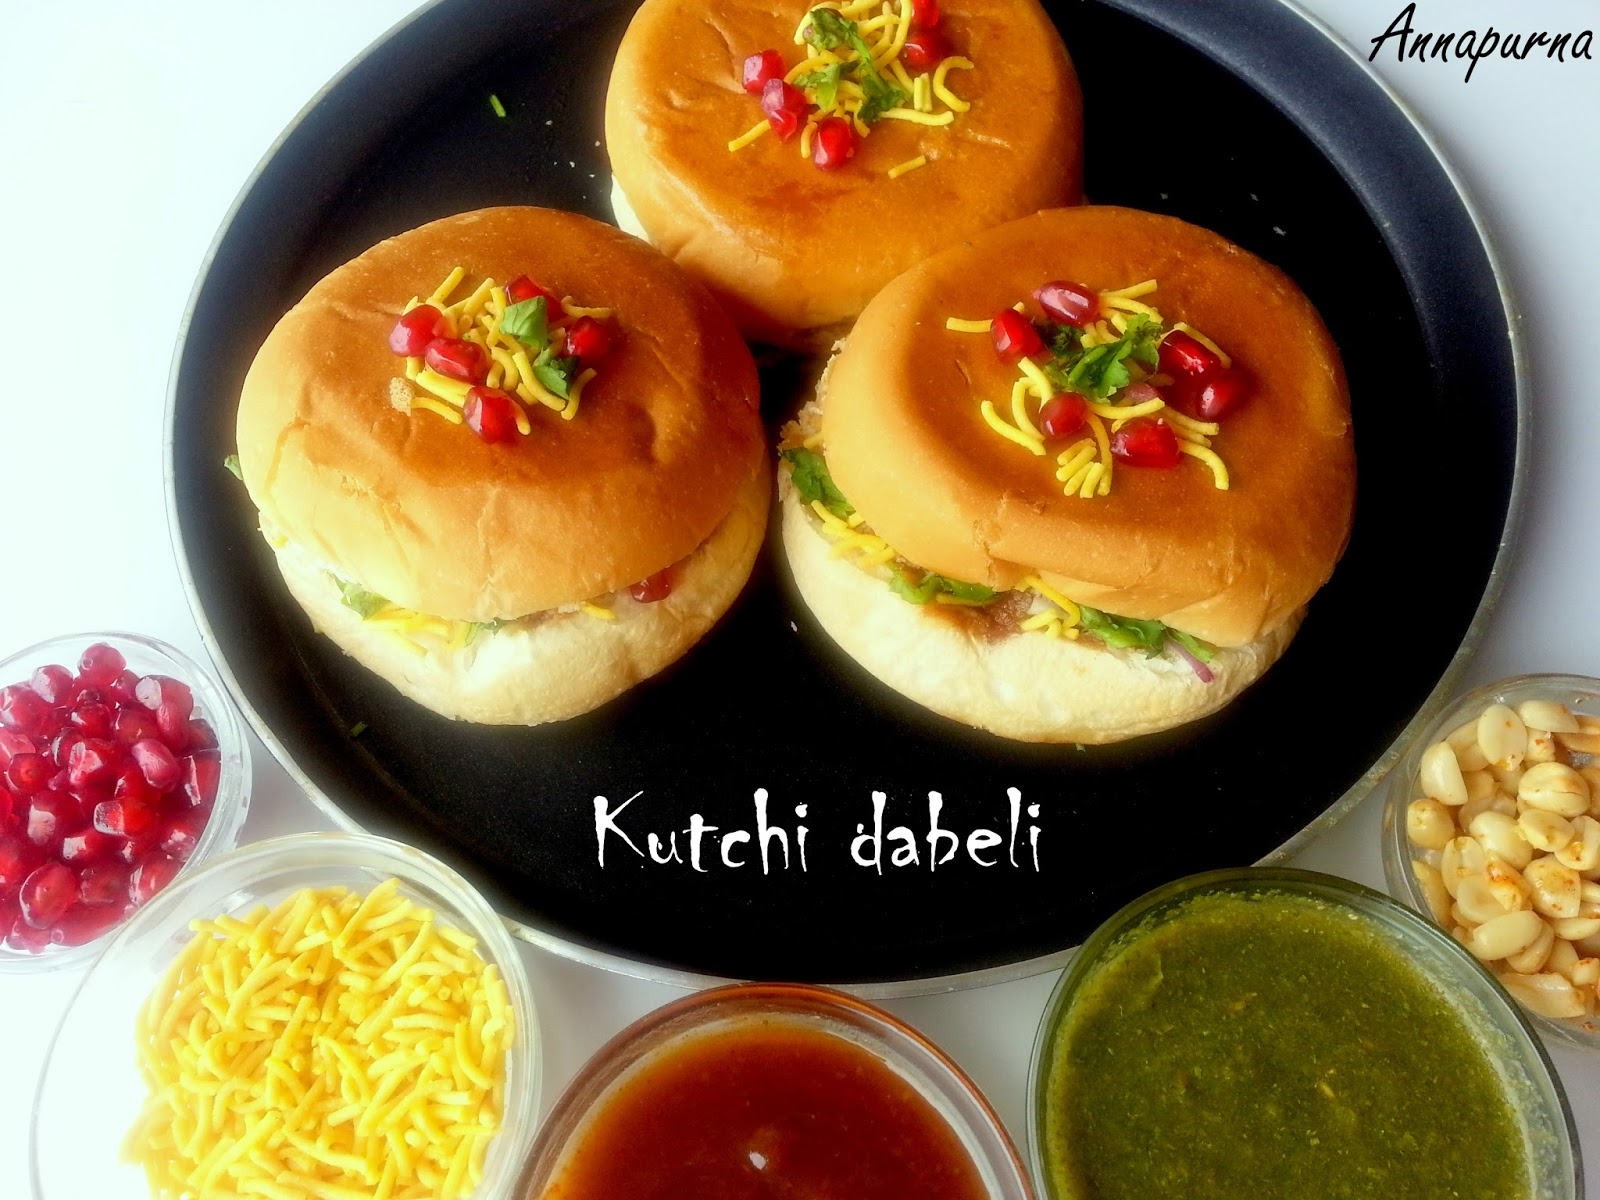 Annapurna kutchi dabeli indian street food for Annapurna indian cuisine